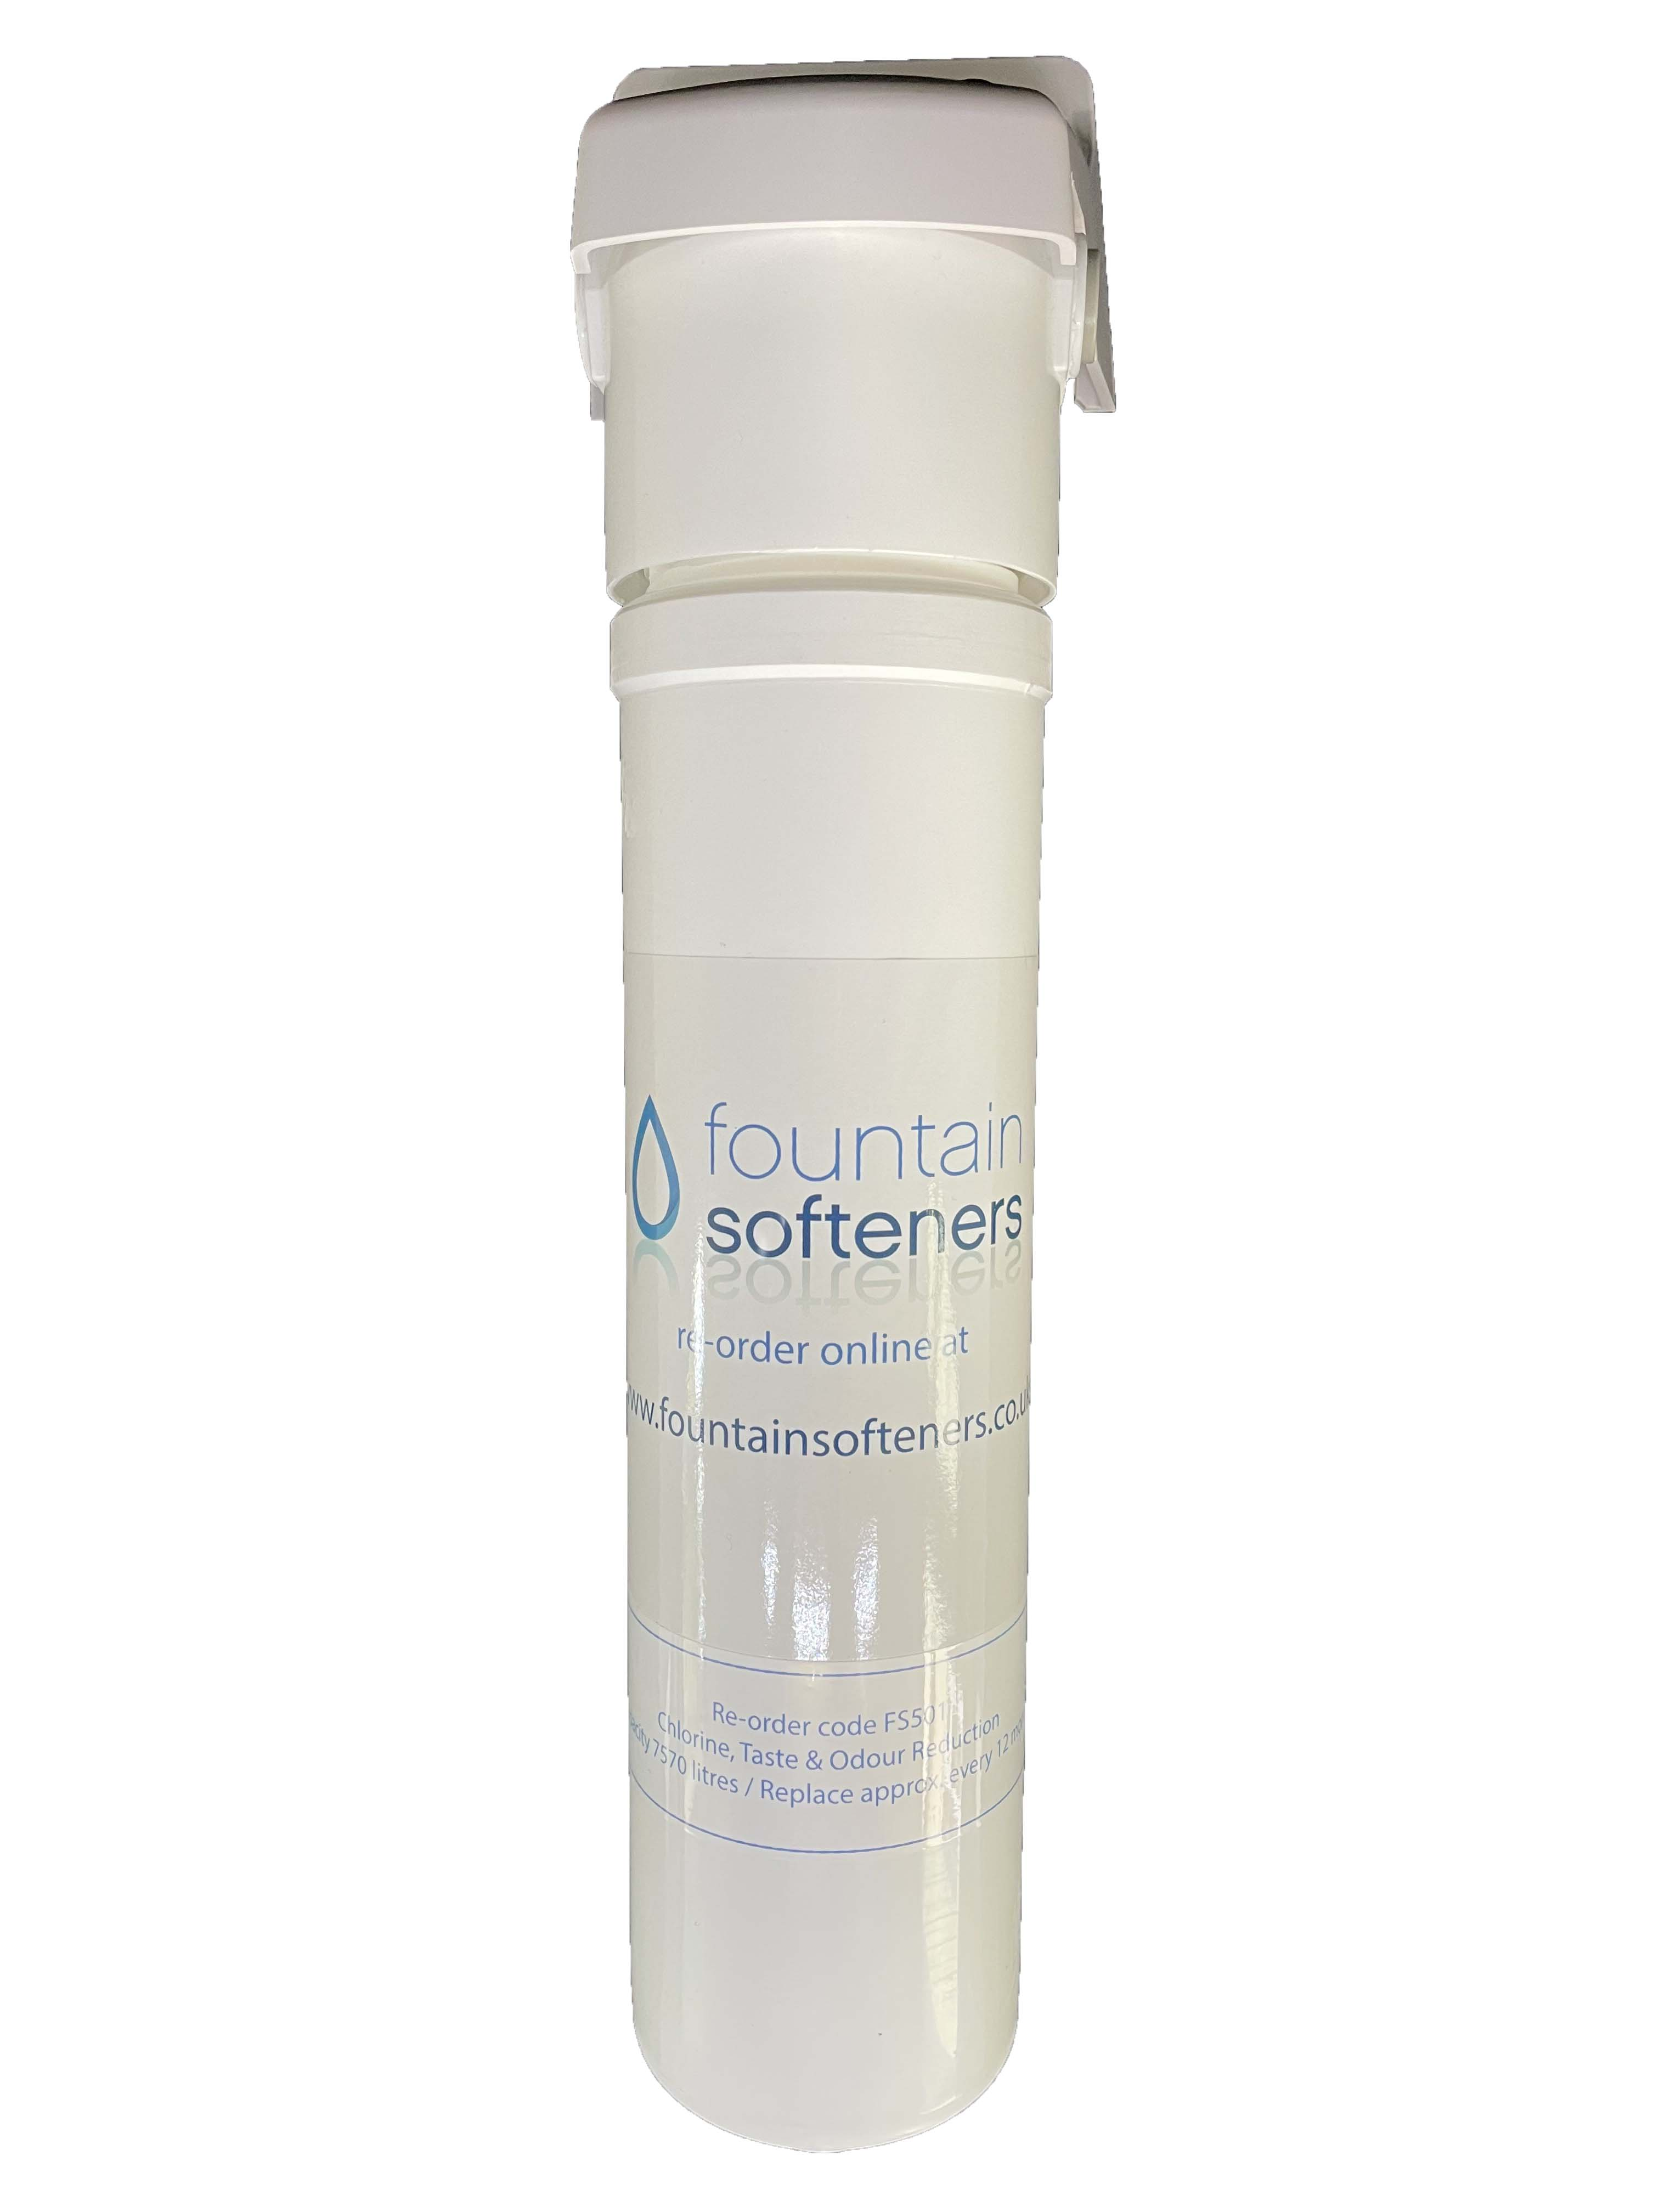 Water filter kit - Fountain Softeners